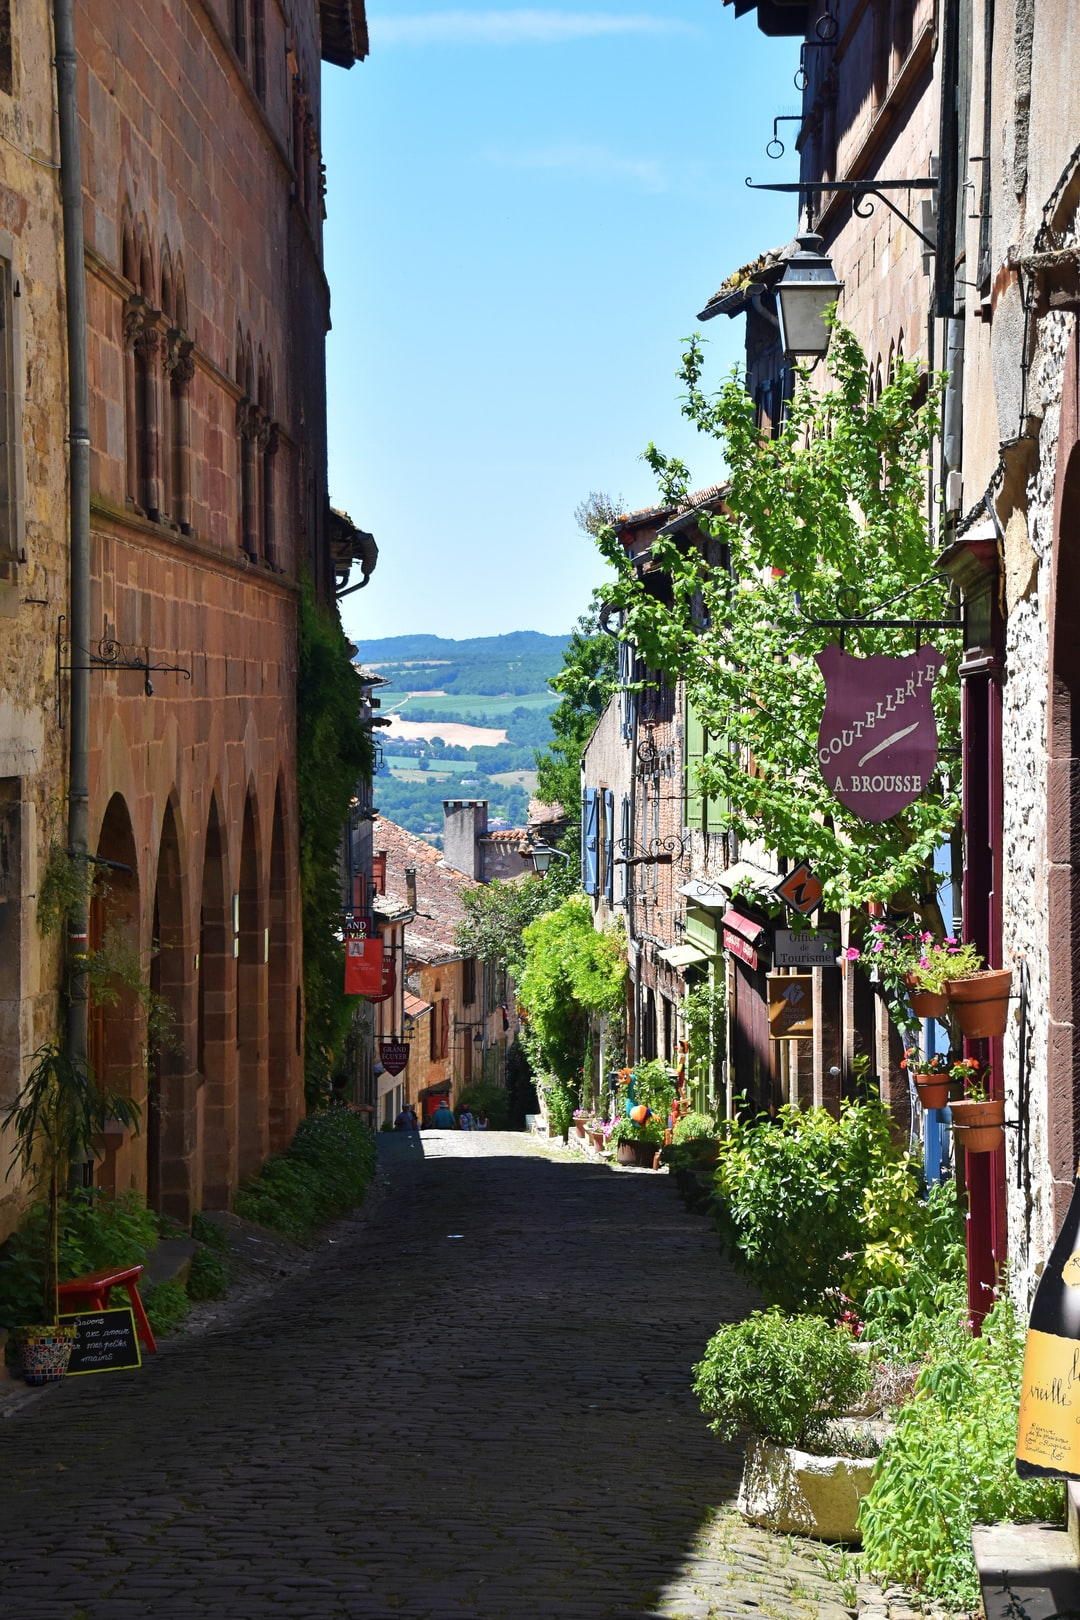 Cordes-sur-Ciel sits above the landscape in Southern France, with endless picturesque cobbled streets and outdoor markets. A beautiful area to explore, particularly on a lovely afternoon (when I took the photo).